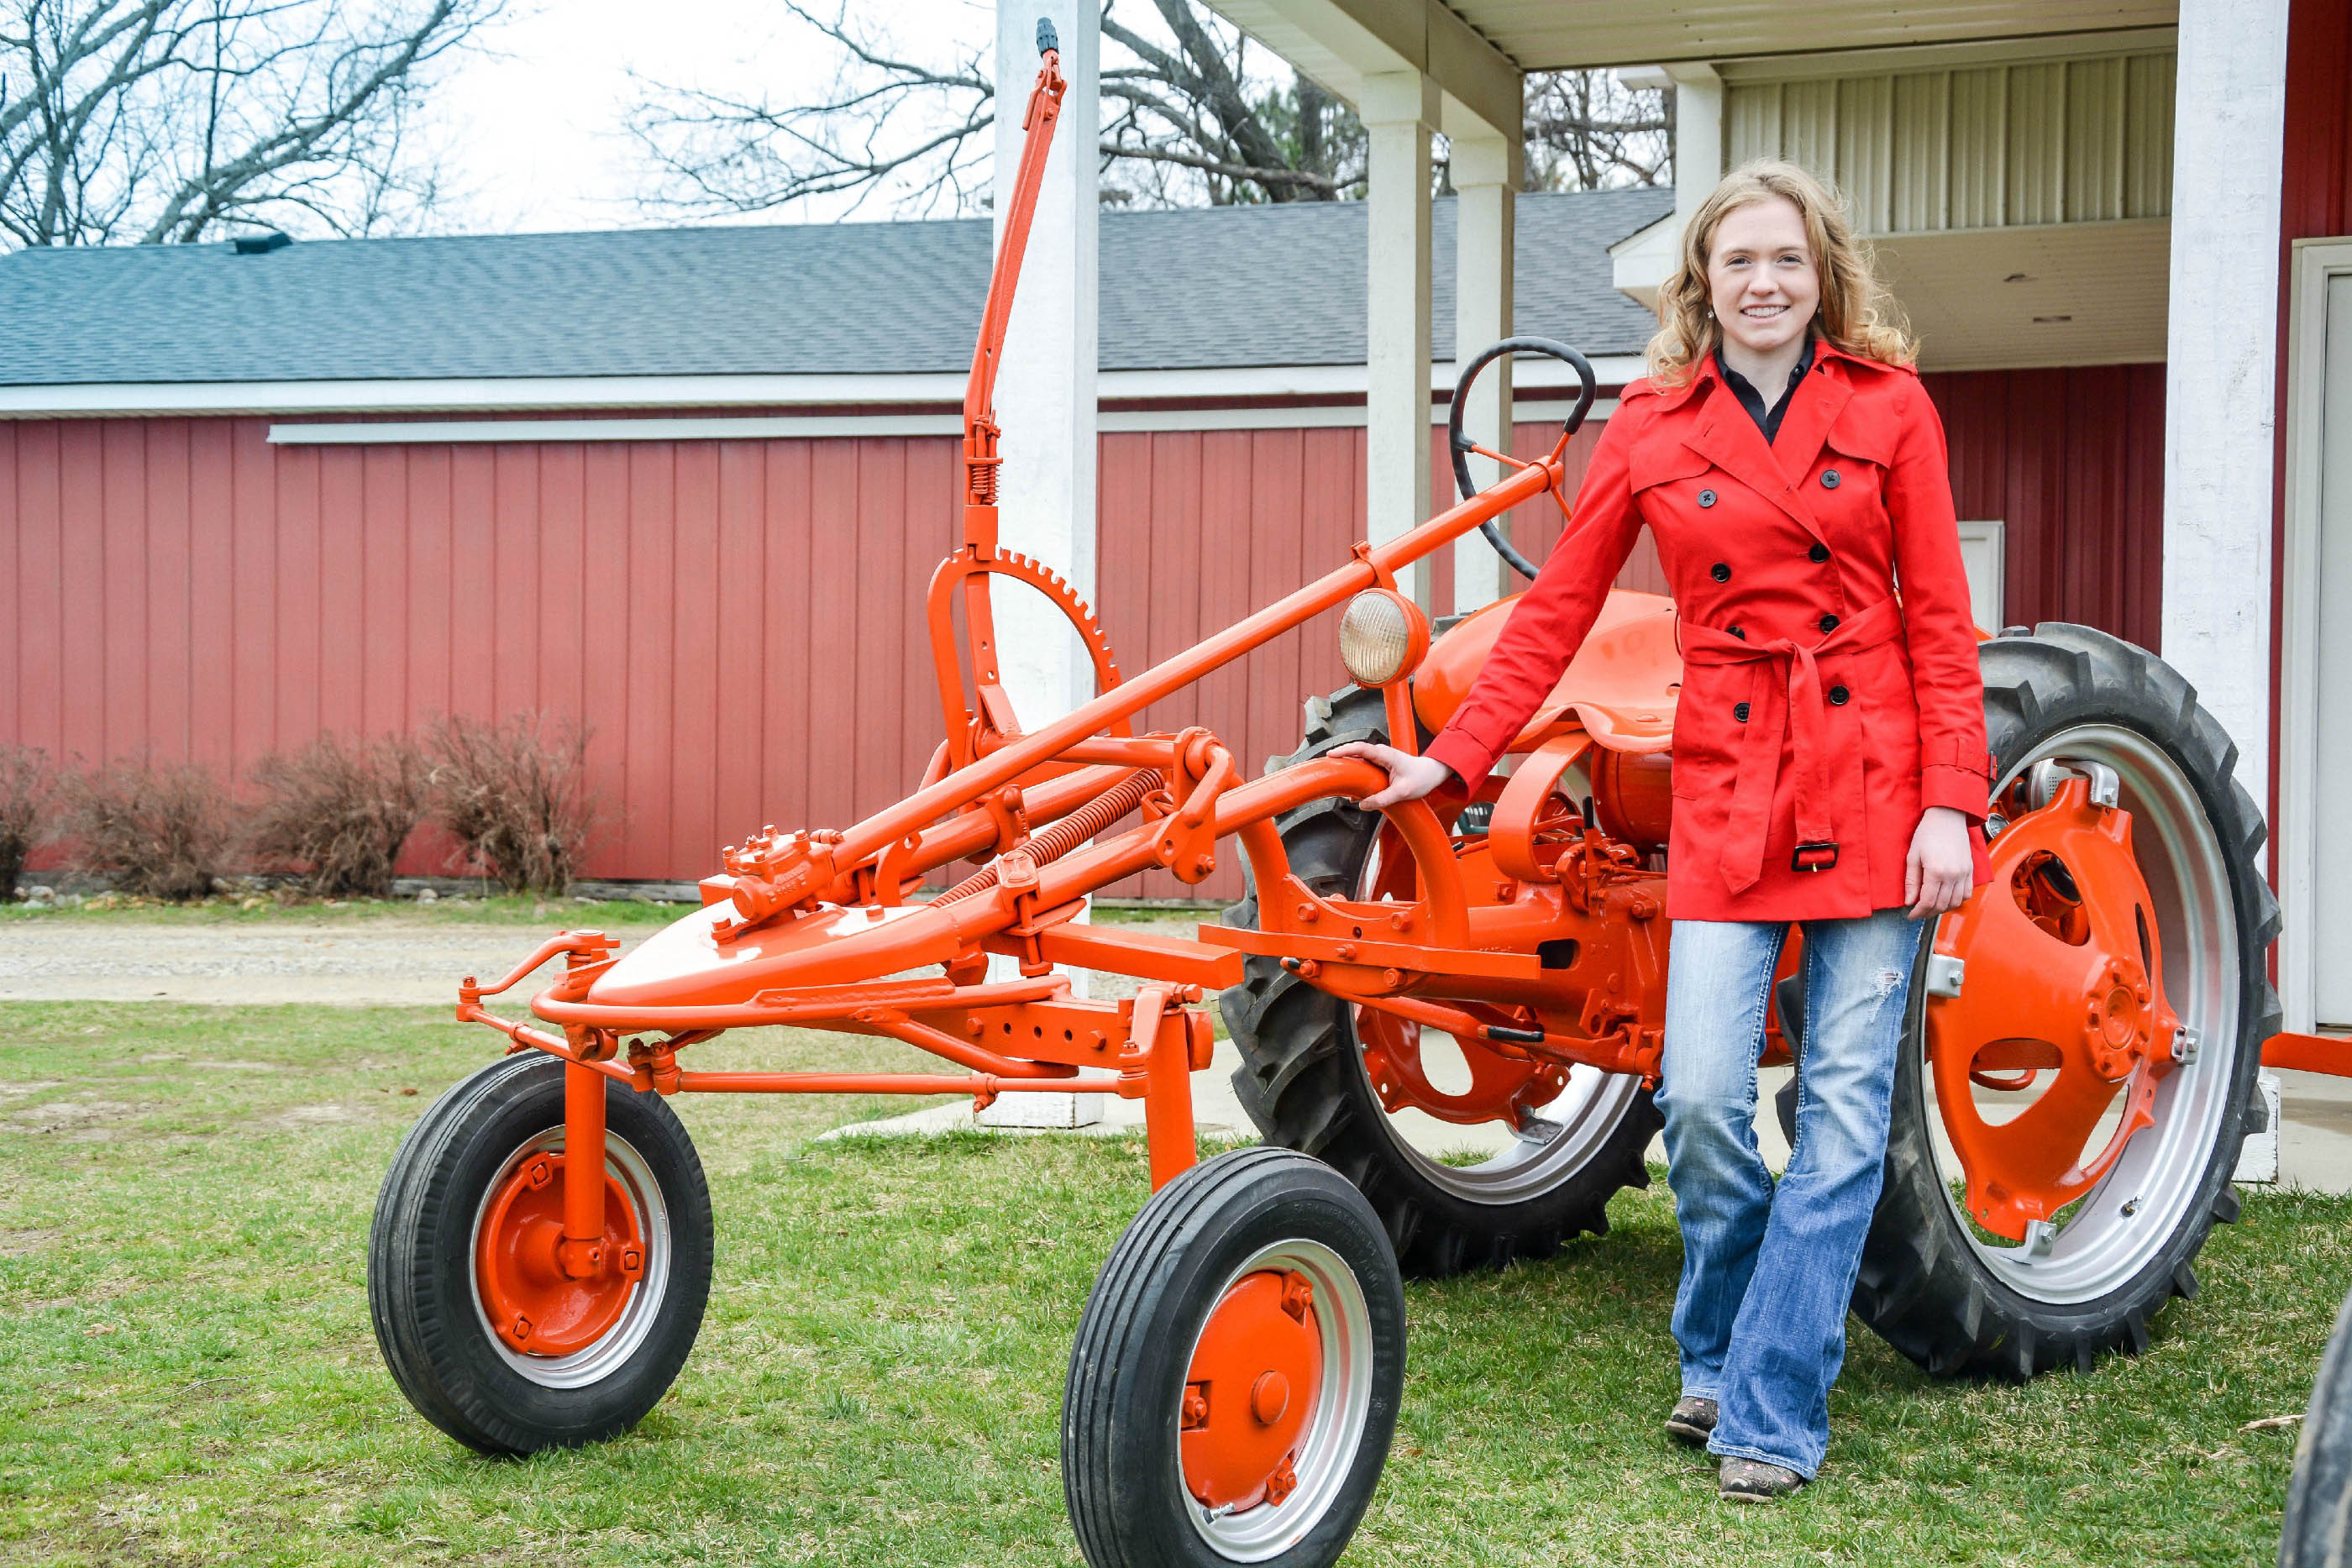 Why Are Allis Chalmers Tractors Orange